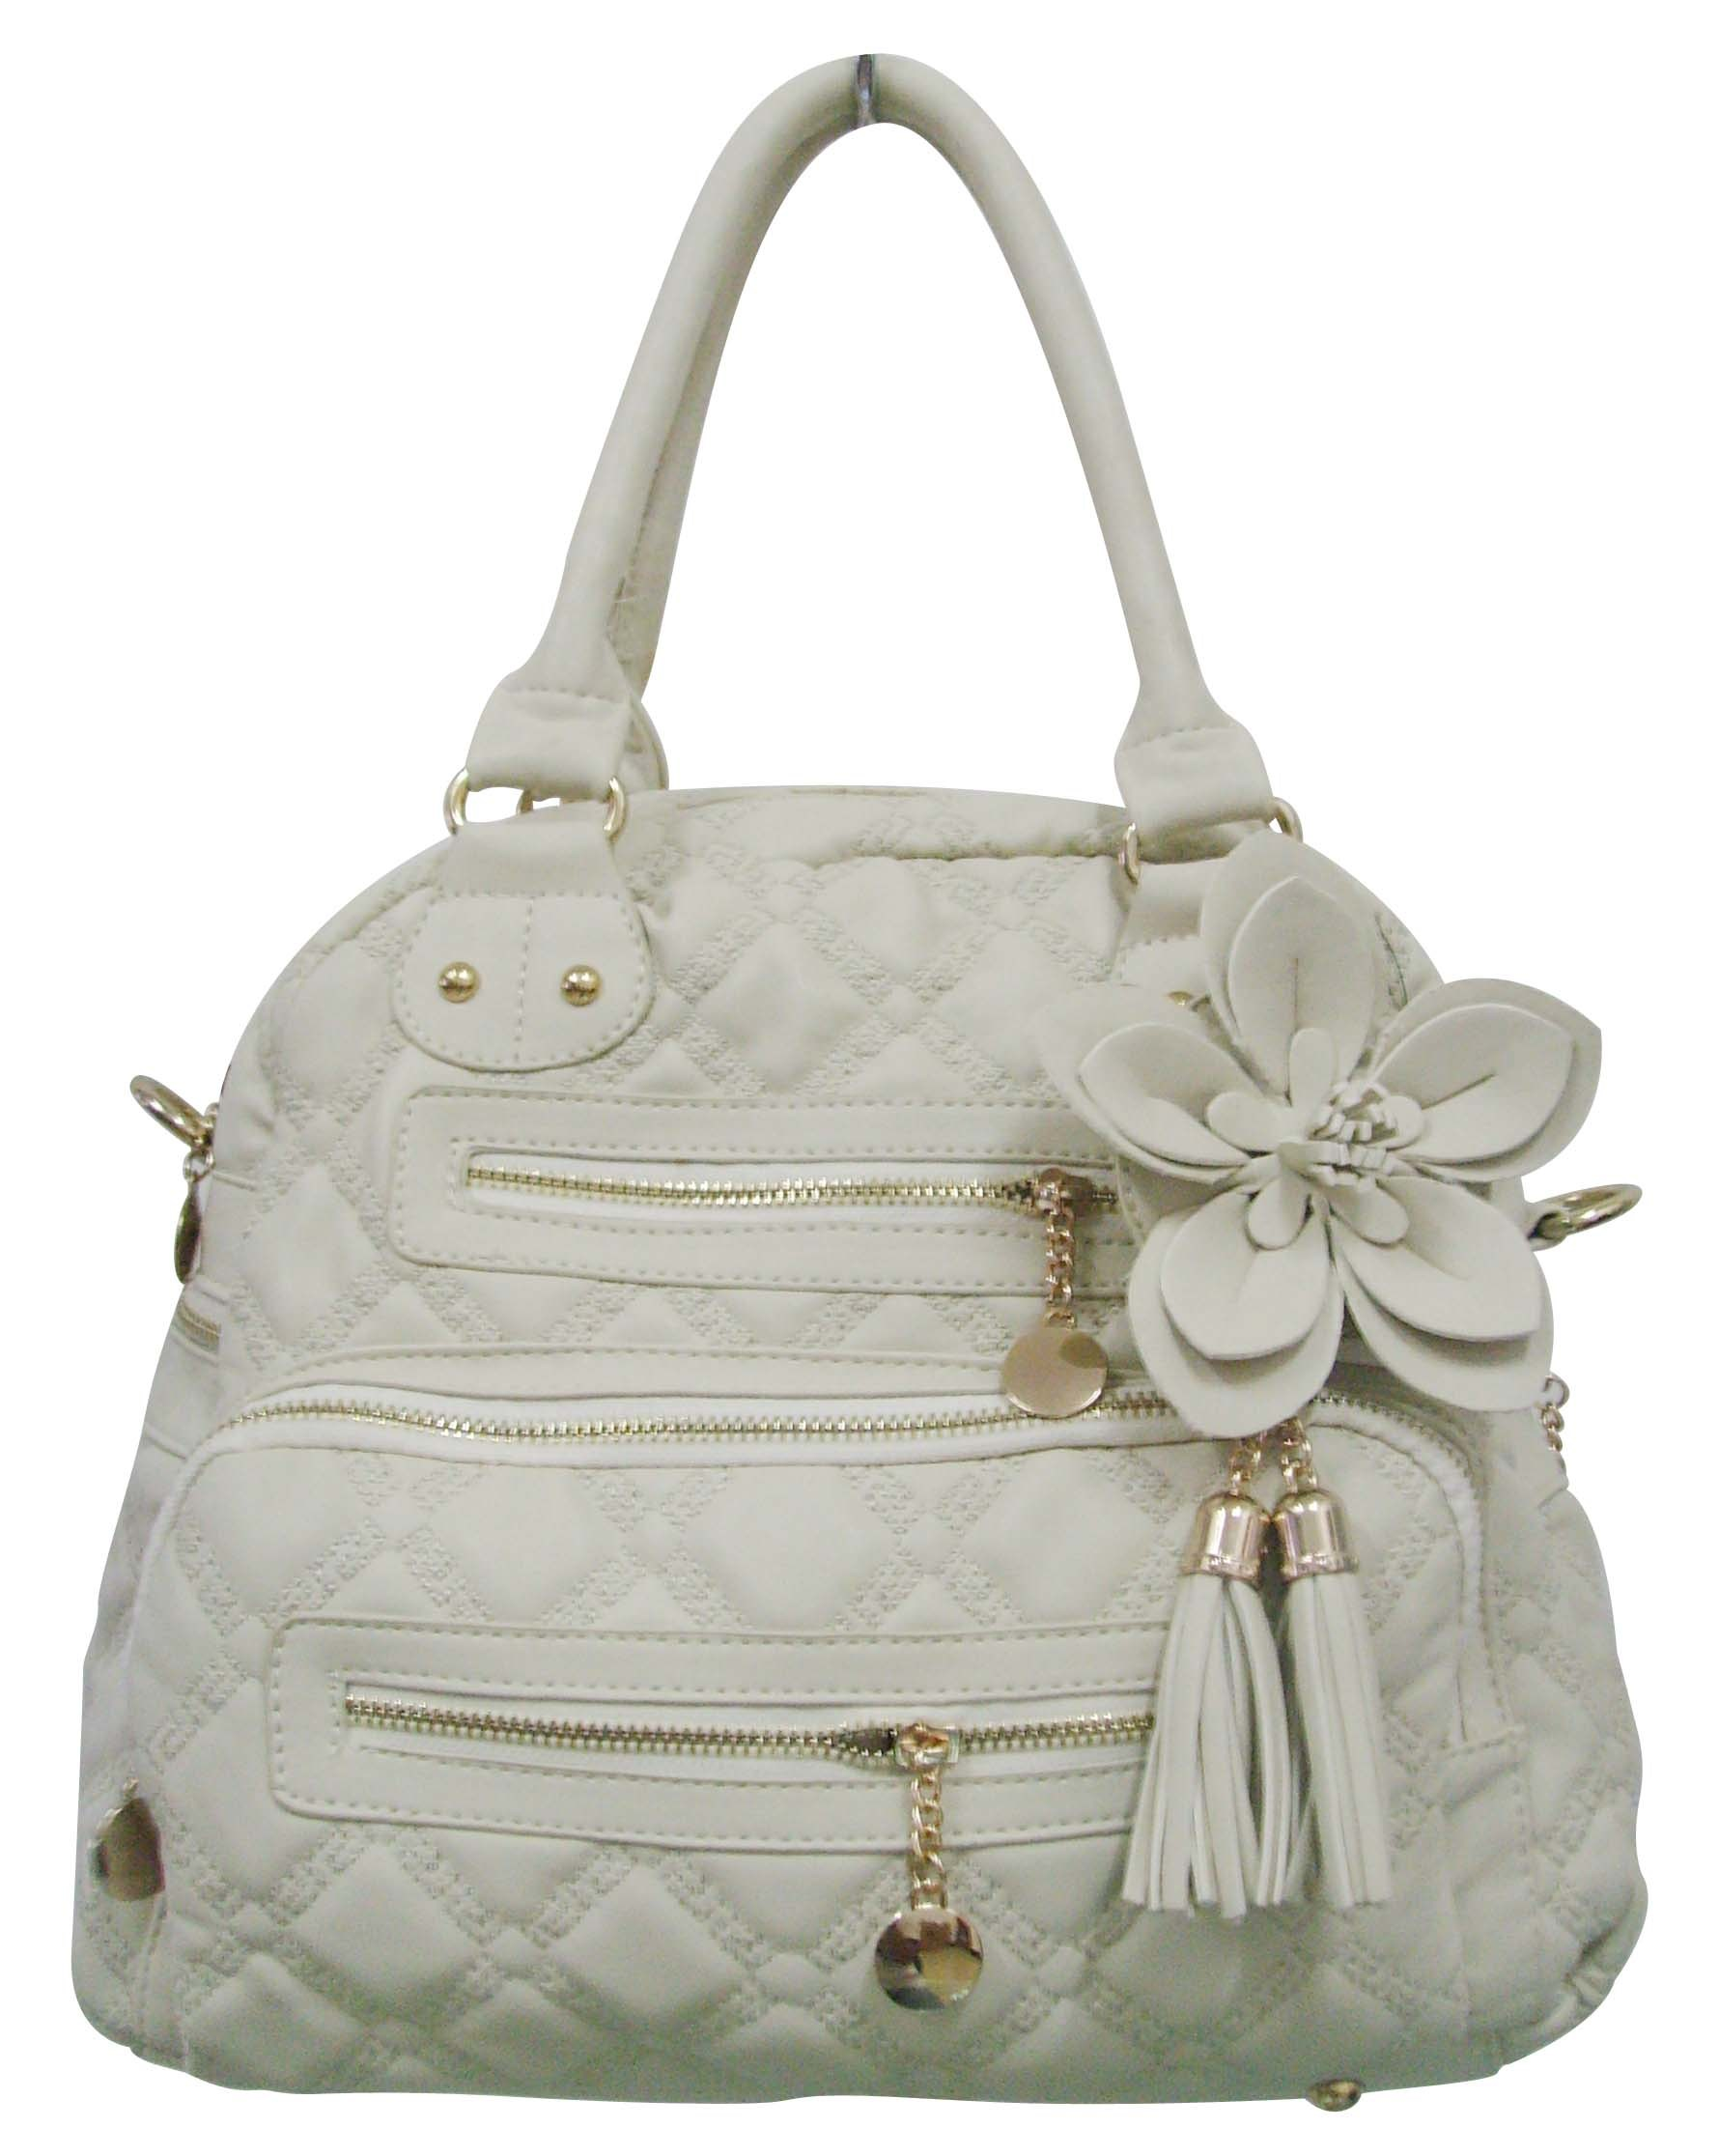 Handbag (1295) - China Handbag,Pu Bag,Women'bag in Handbags